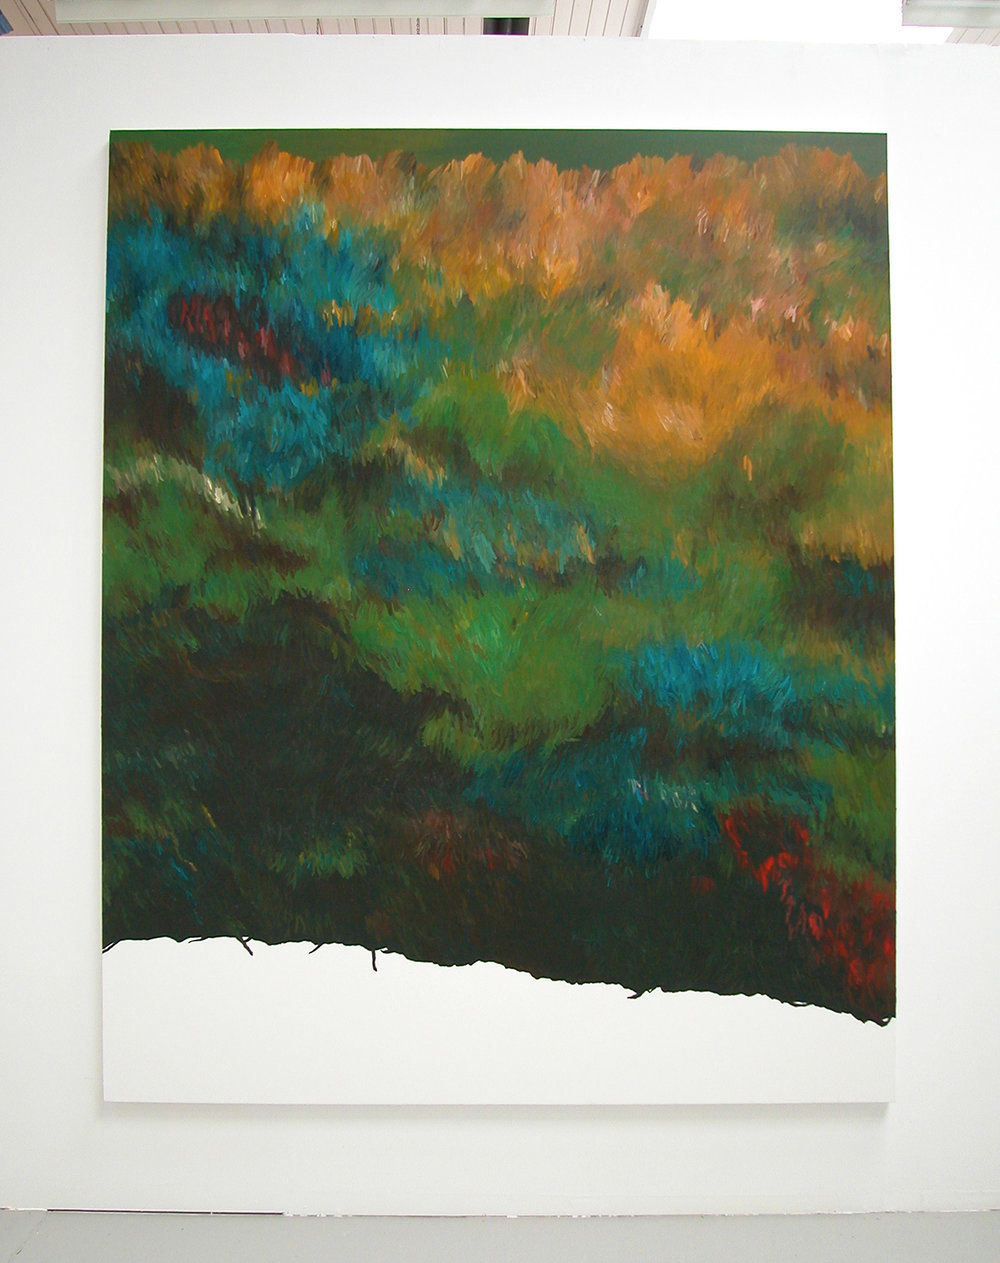 Roley-poley, 2007  oil on canvas  248 x 200 cm